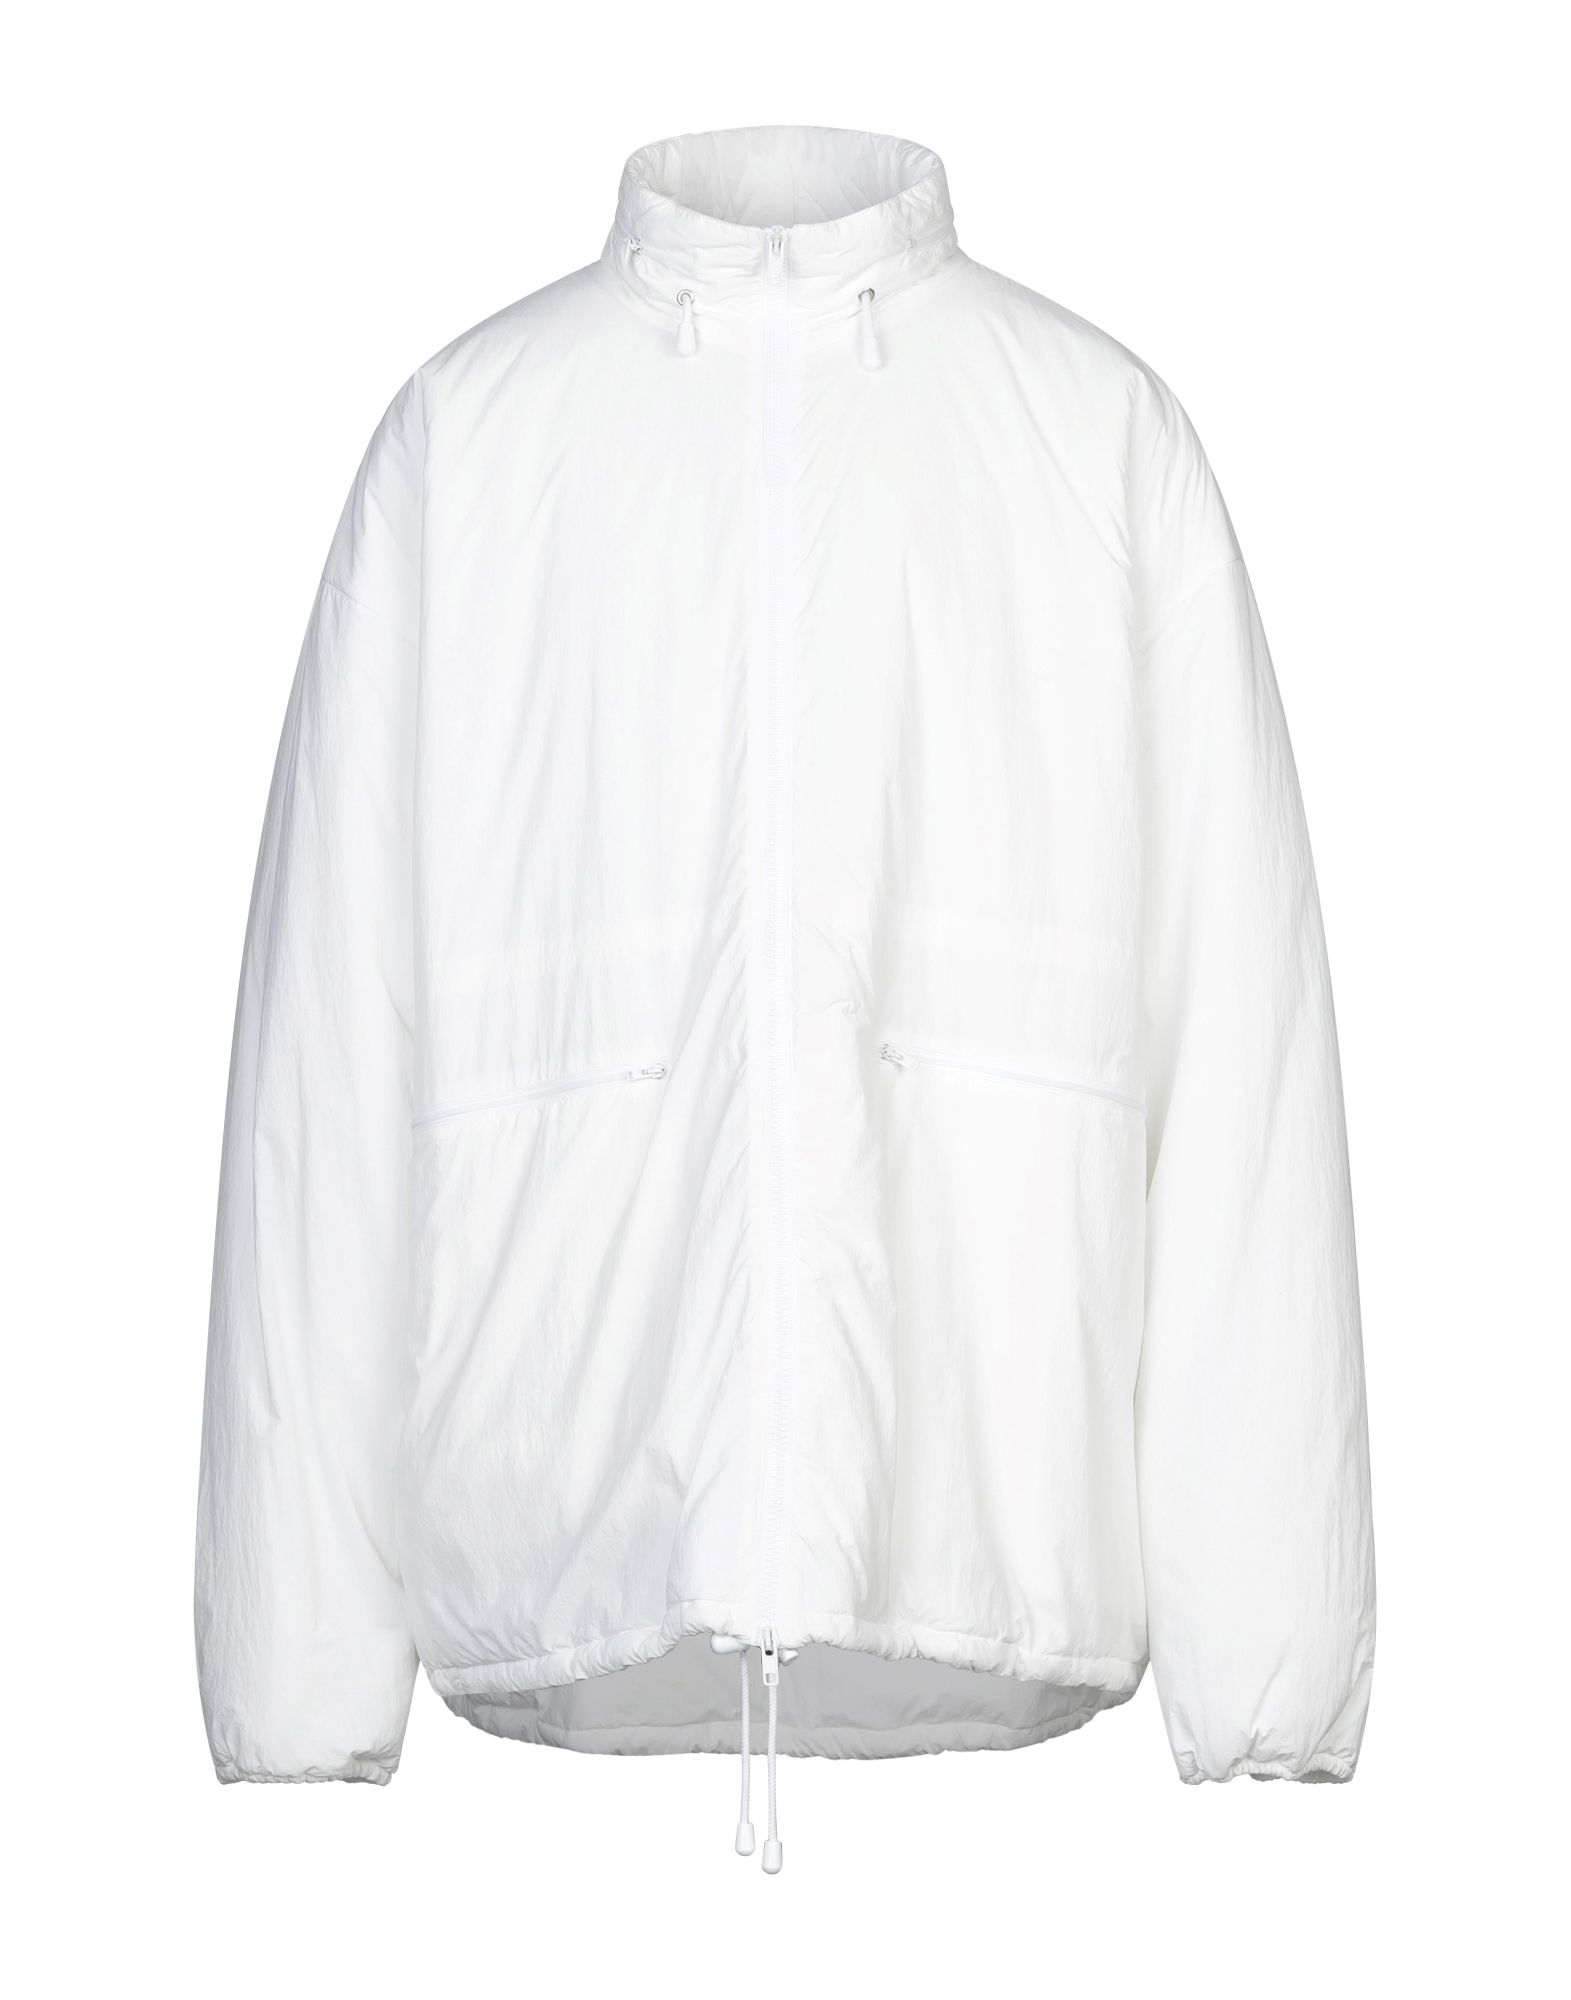 MAISON MARGIELA Synthetic Down Jackets. techno fabric, no appliqués, basic solid color, single-breasted, zipper closure, hooded collar, multipockets, long sleeves, internal padding, large sized. 100% Polyamide, Polyester